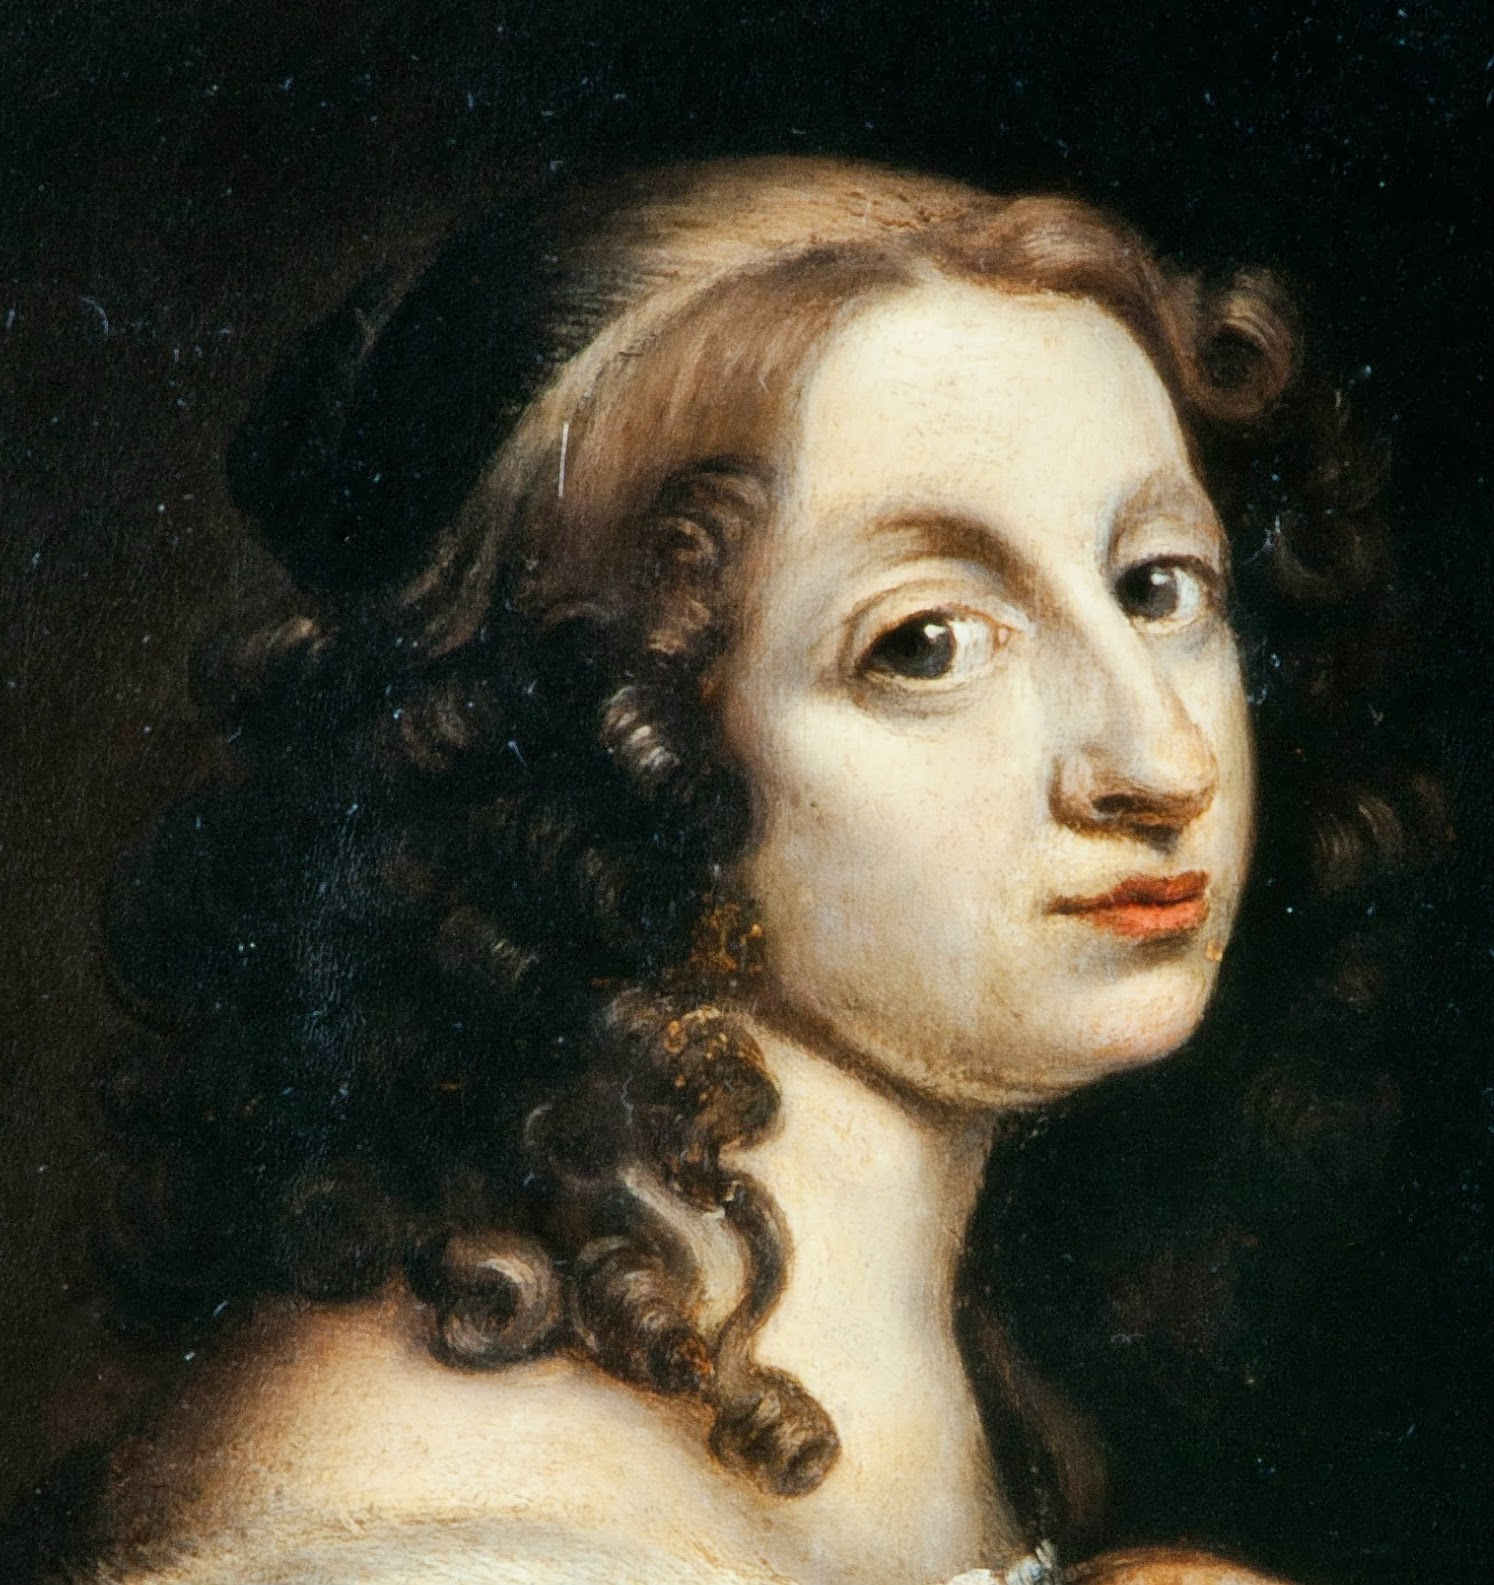 christina_queen_of_sweden_1644-1654_-_google_art_project